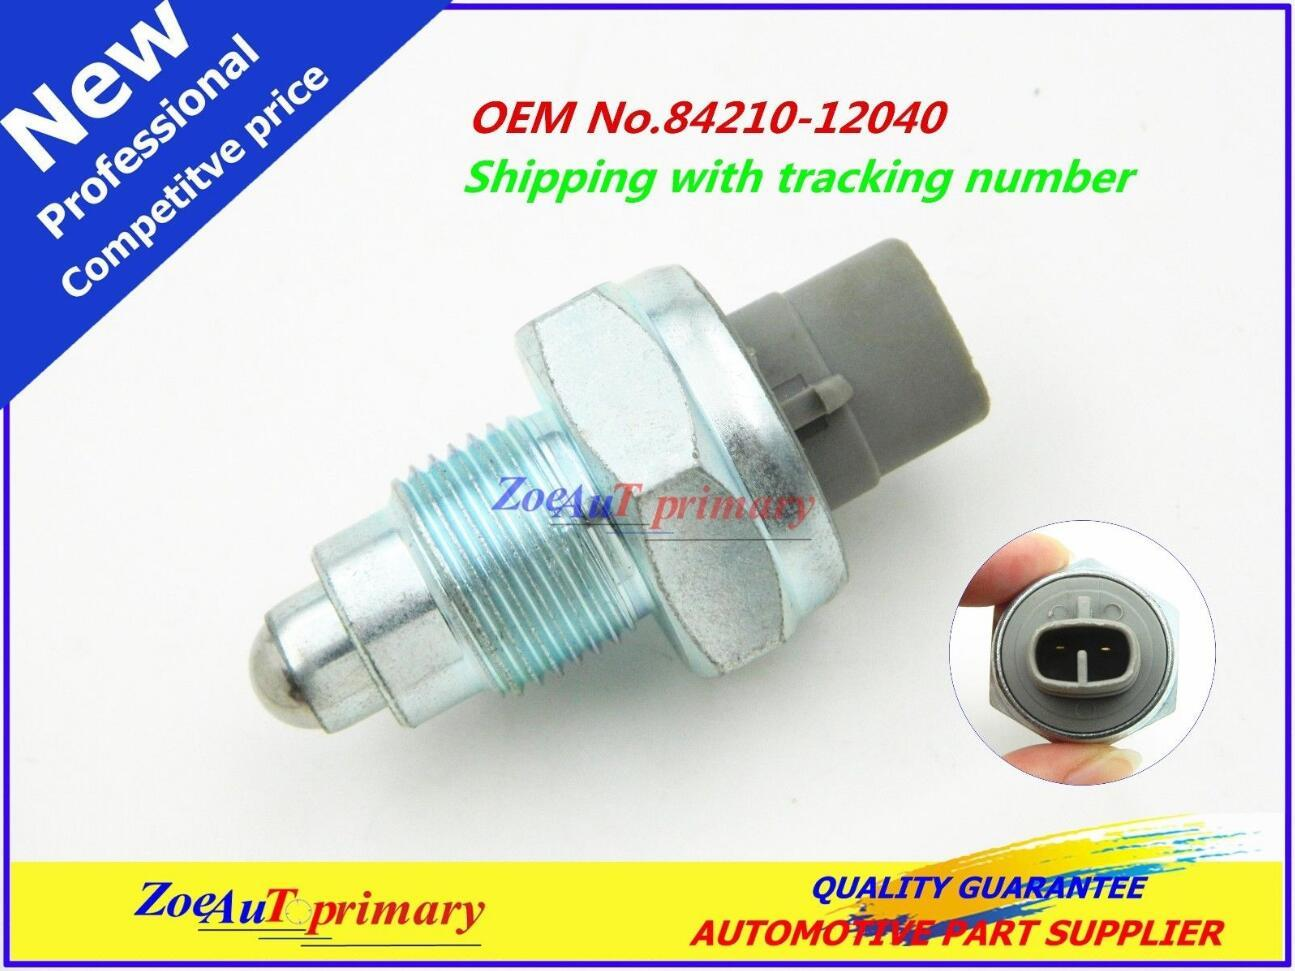 2019 reverse light switch 84210 12040 for toyota hilux ln106 ln1072019 reverse light switch 84210 12040 for toyota hilux ln106 ln107 ln111 ln130 series from zoeautoprimary, $8 55 dhgate com